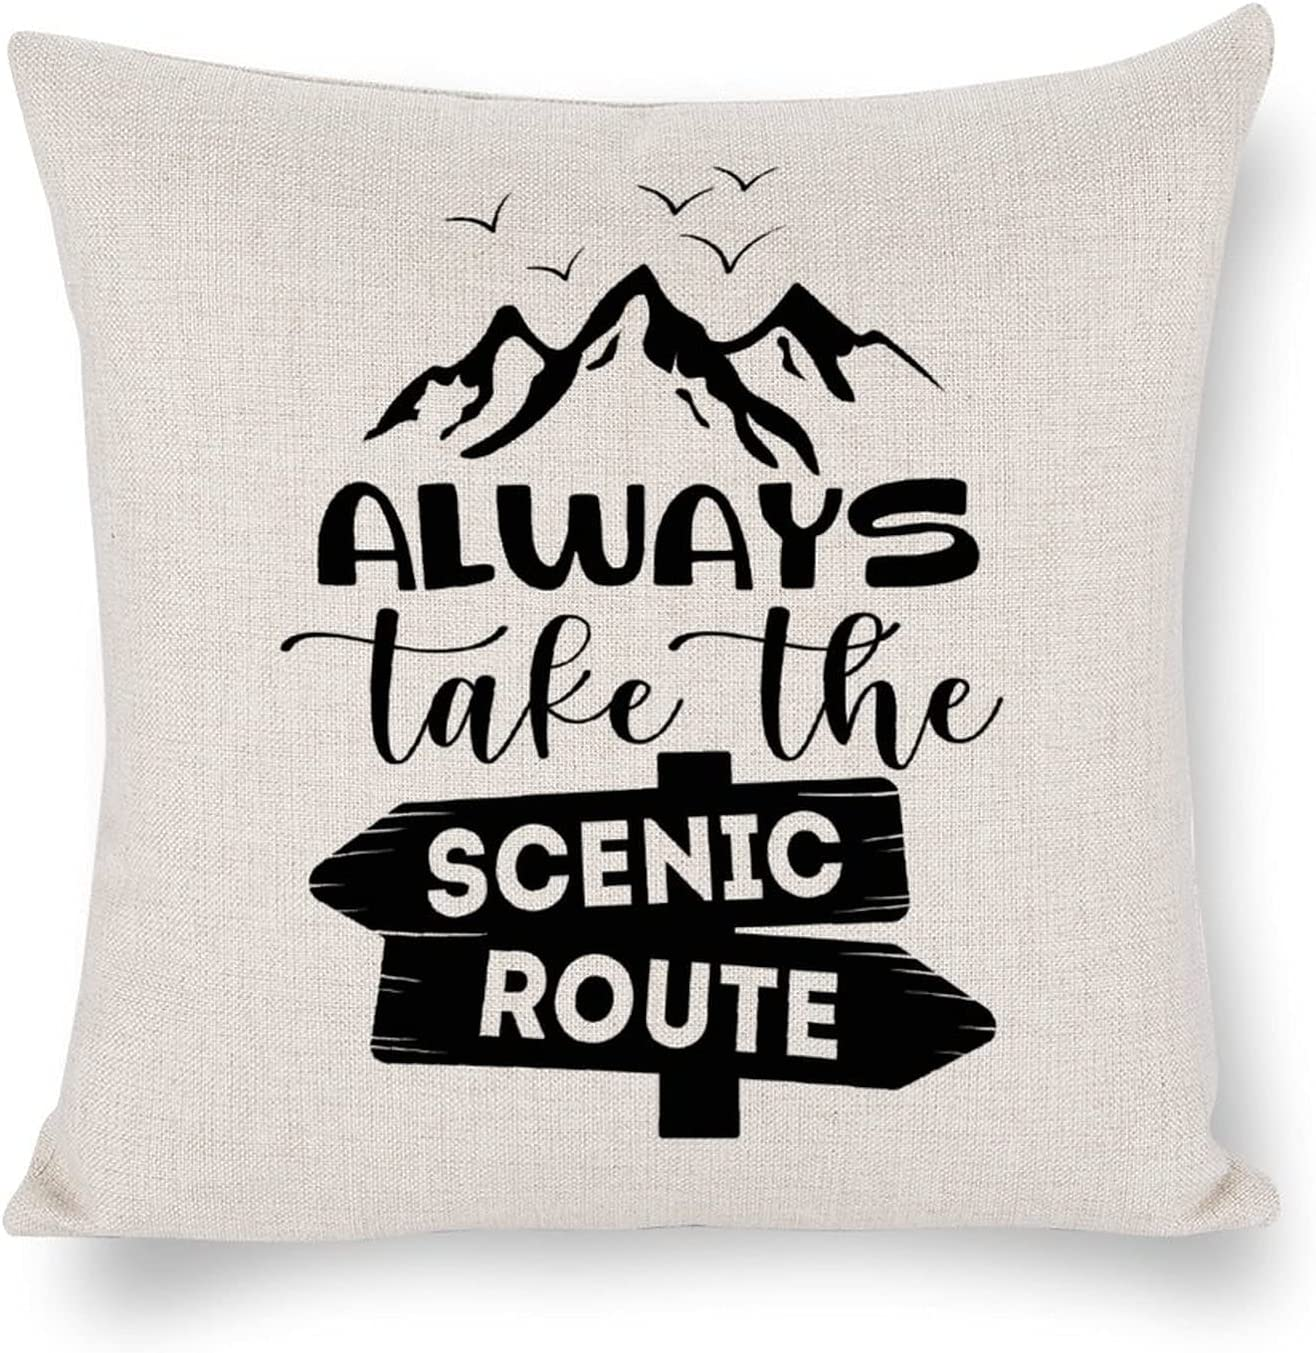 Advendure Quote Pillow Always Take The Scenic Route White Linen Throw Pillow Cover Hidden Zip Accent Cushion Adventure pillow case Camp Cushion Decor for Home 18×18 Inch Gift for Adventure Lover